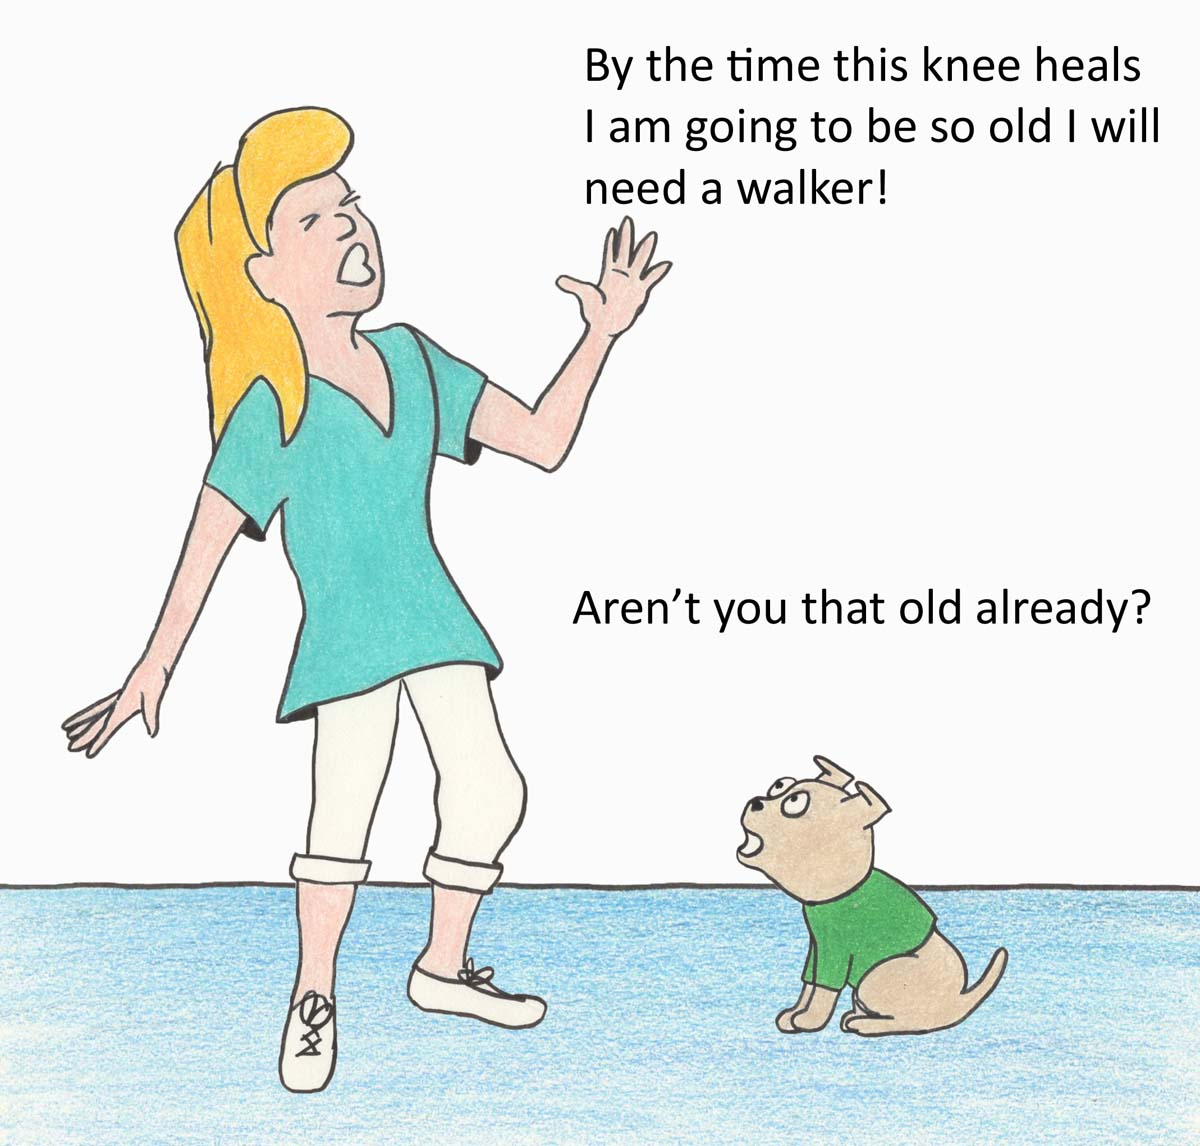 By the time this knee heals, I am going to need a waleker.  Aren't you that old already?